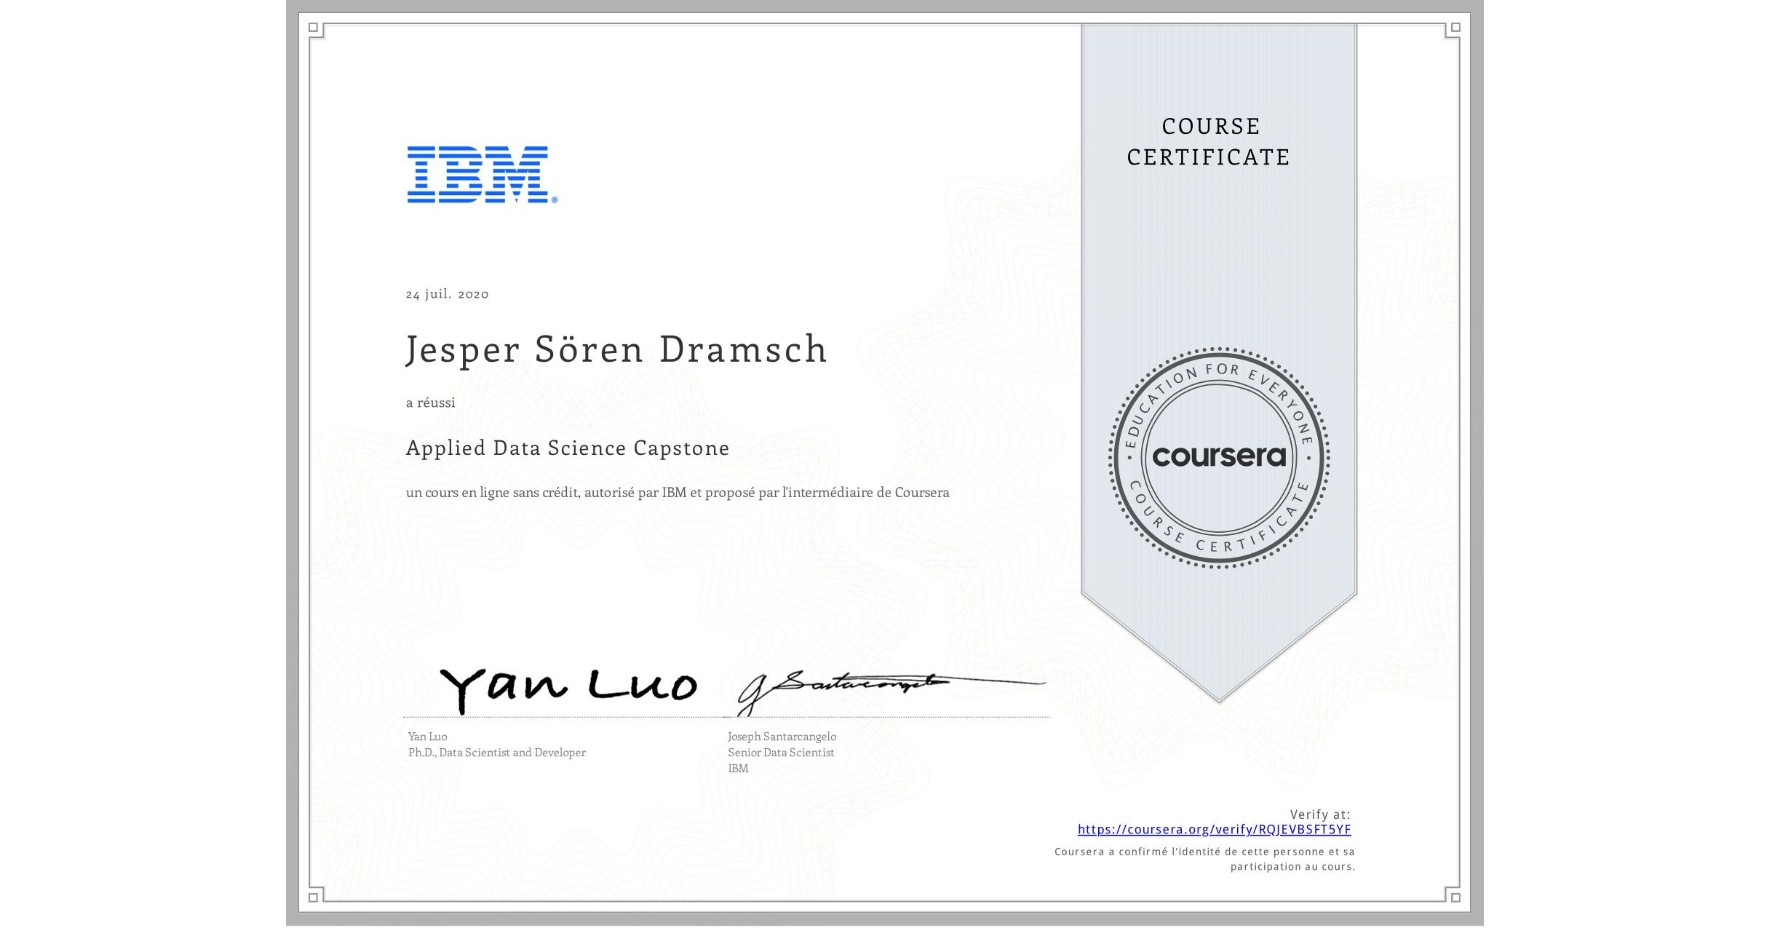 View certificate for Jesper Sören Dramsch, Applied Data Science Capstone, an online non-credit course authorized by IBM and offered through Coursera